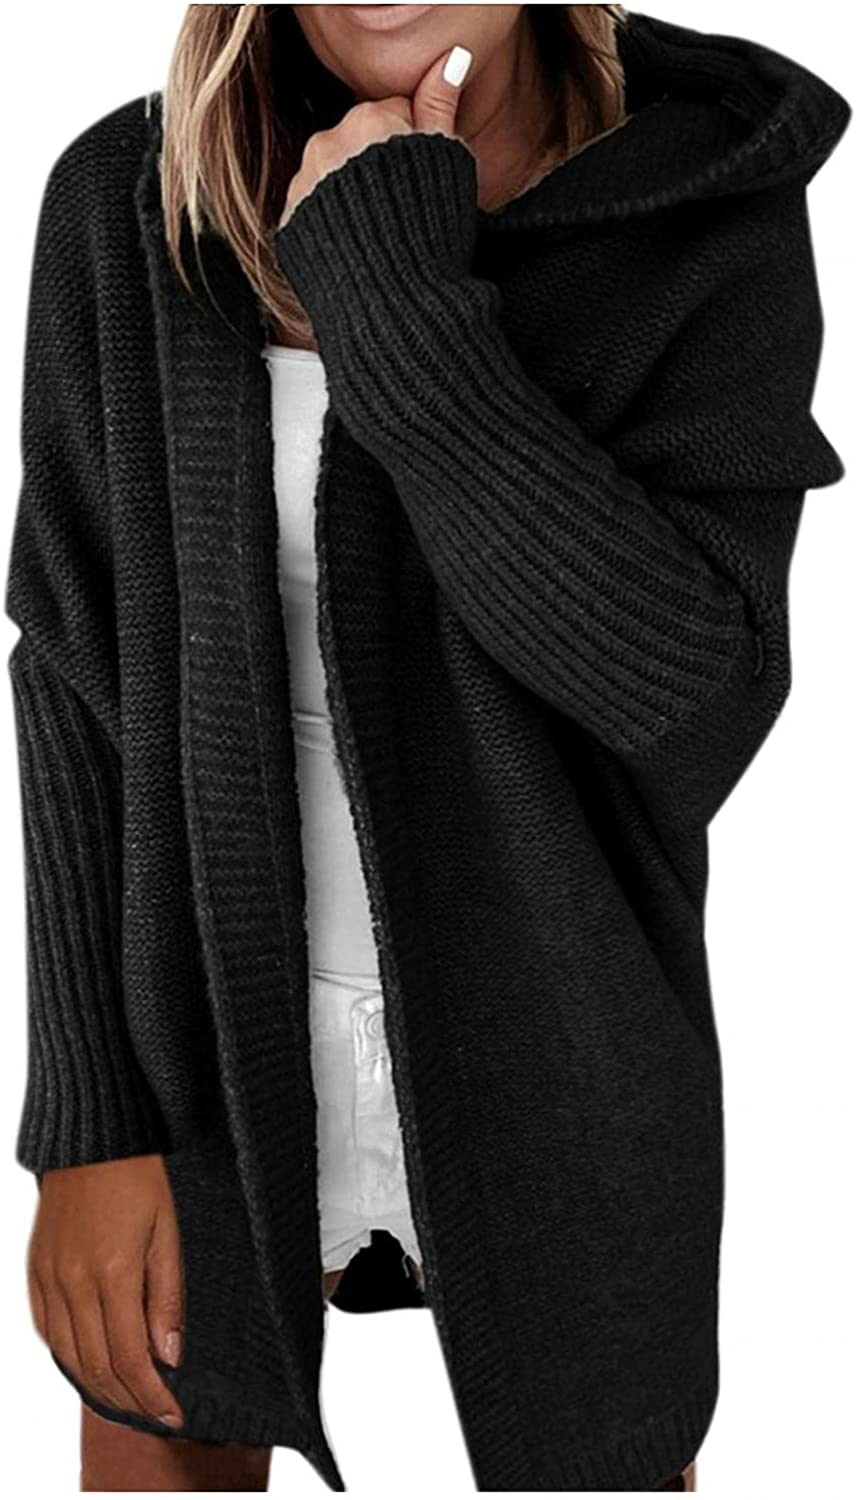 Women's Cardigan Coat Solid Color Hooded Open Stitch Batwing Sleeve Knitted Sweater Outwear